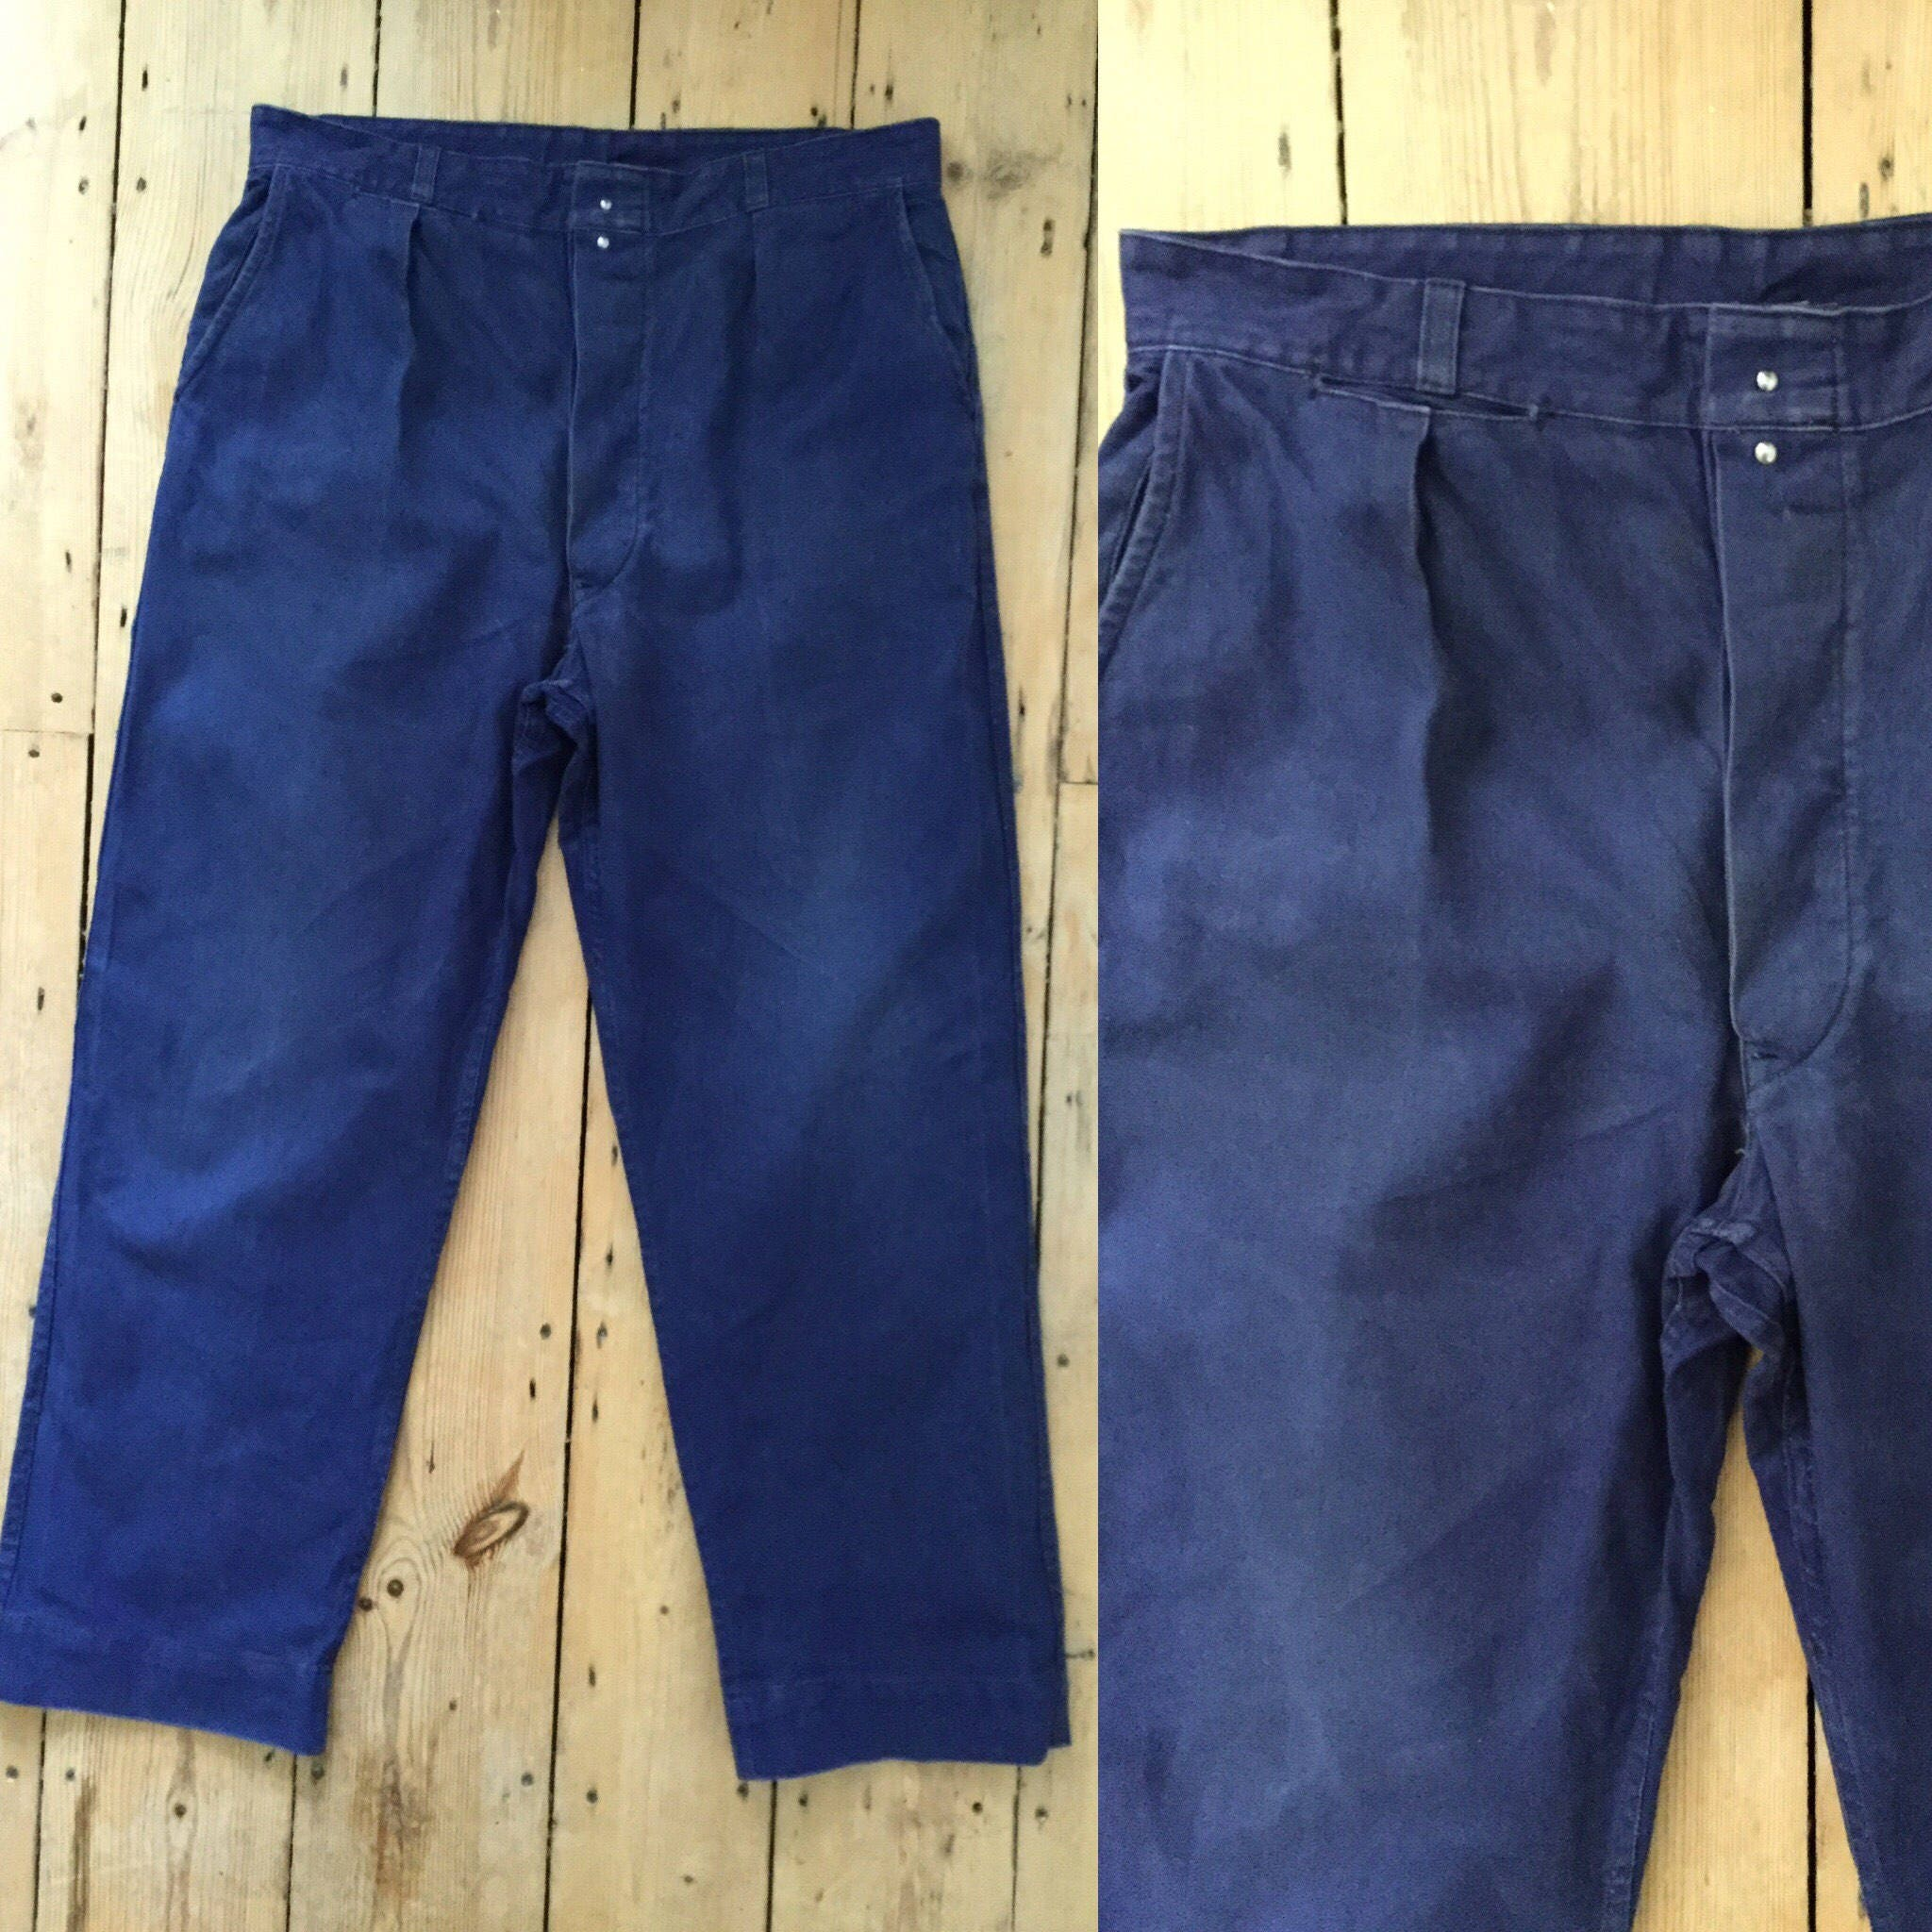 Vintage French Indigo Blue Workwear Trousers  Sanforized  36 waist